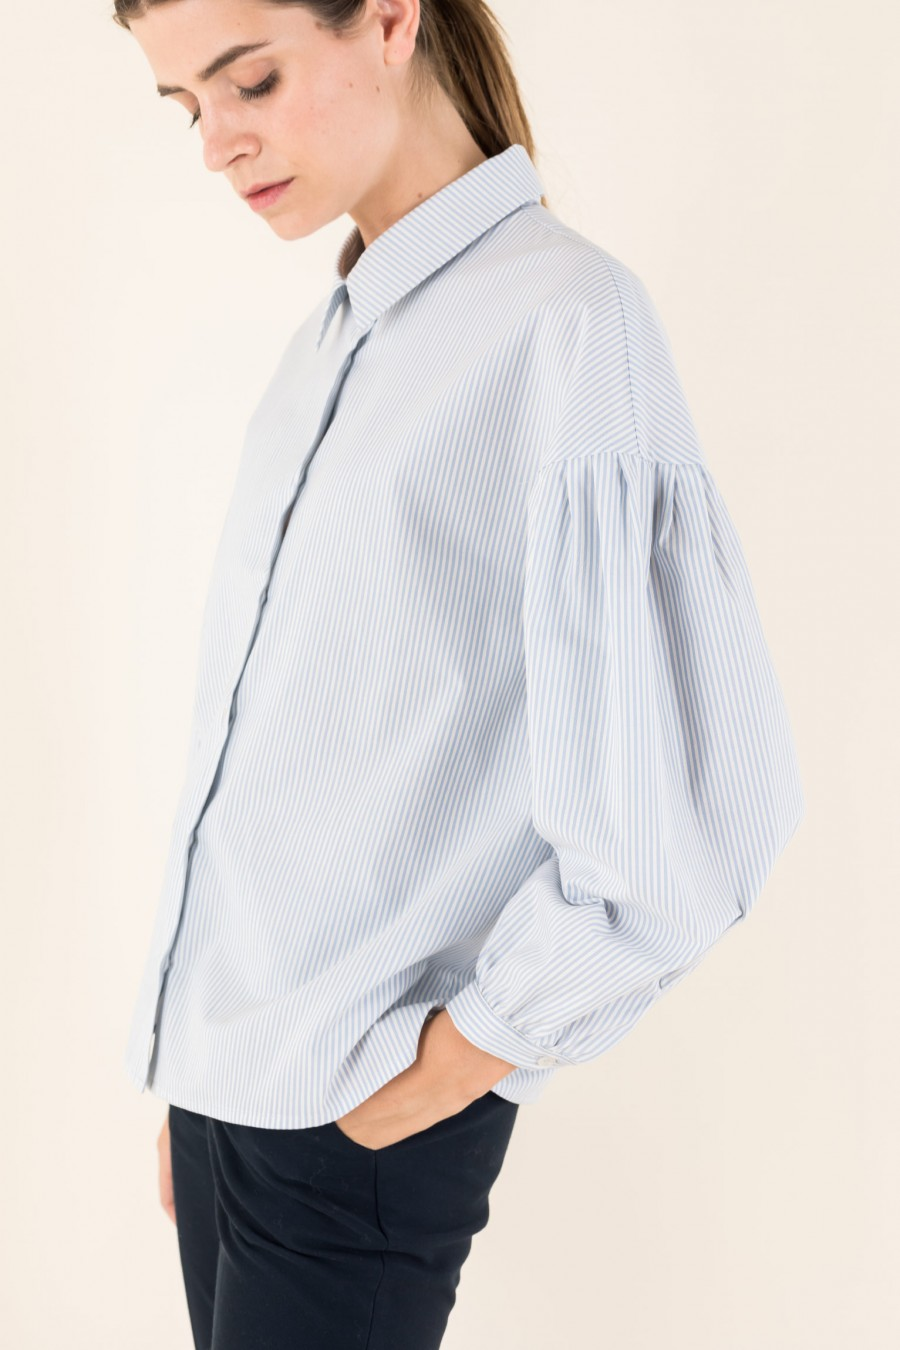 Wide shirt with puffy sleeves